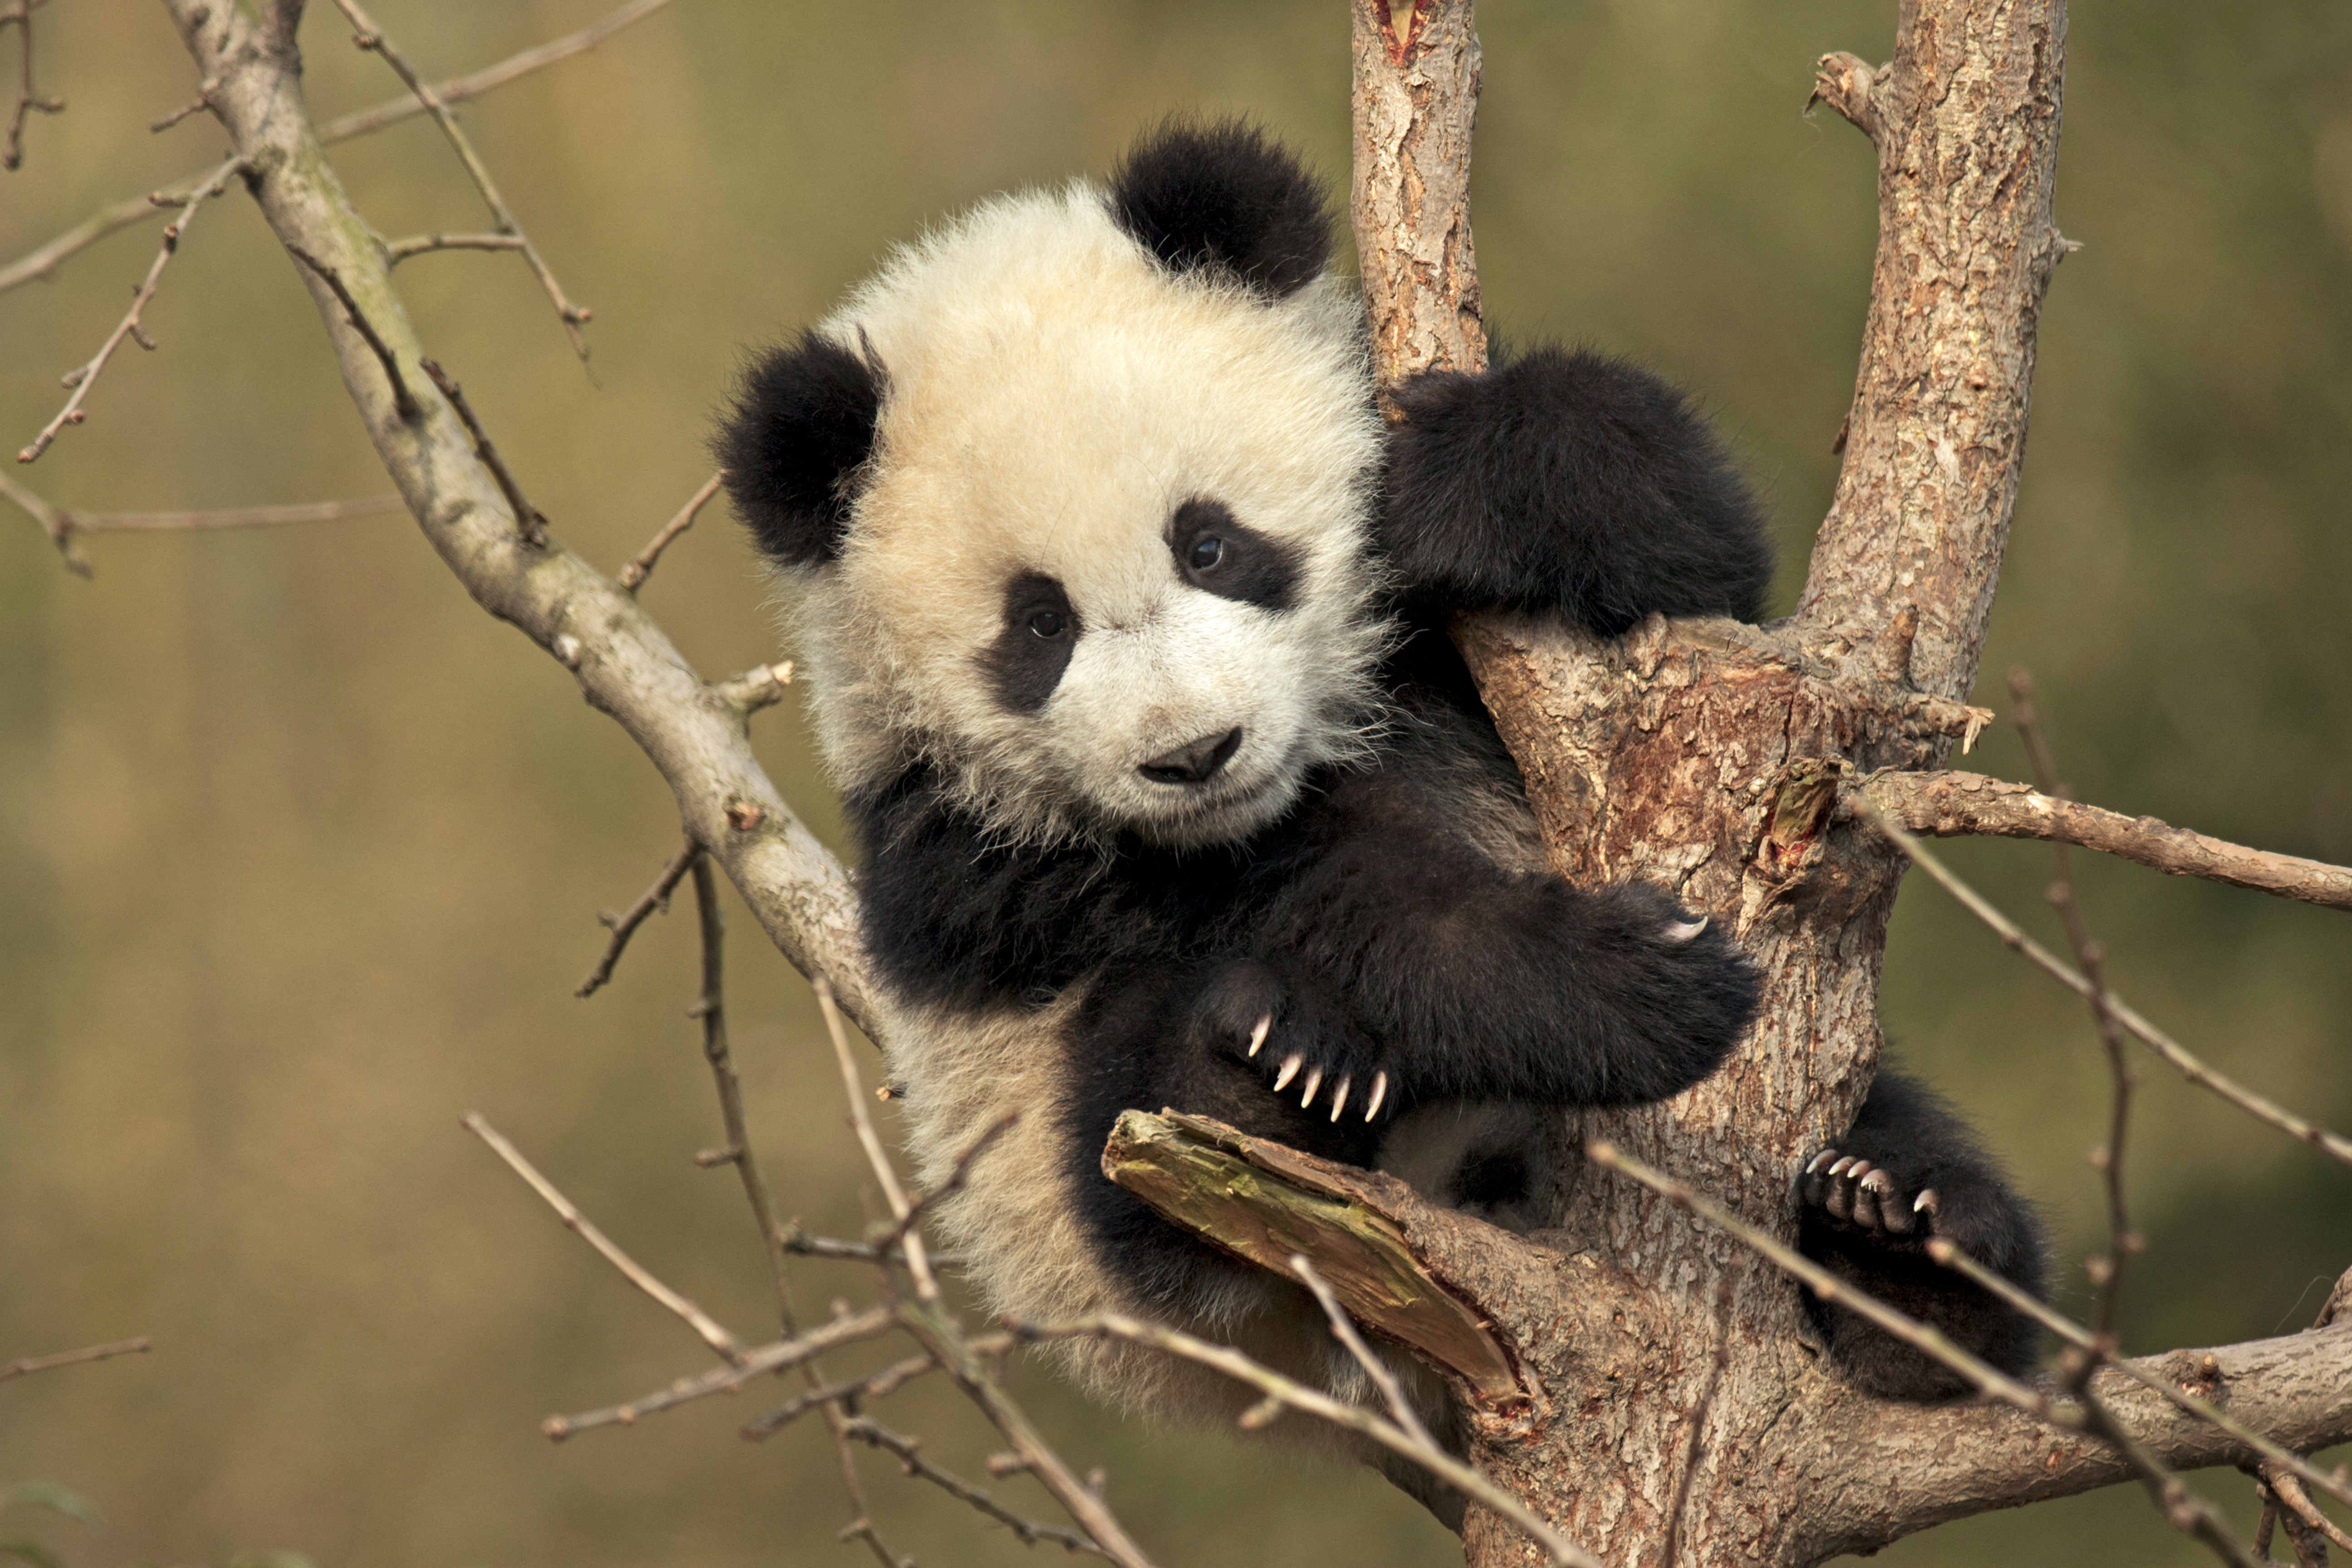 Watch As Adorable Baby Panda Wrestles With A Tree He Is